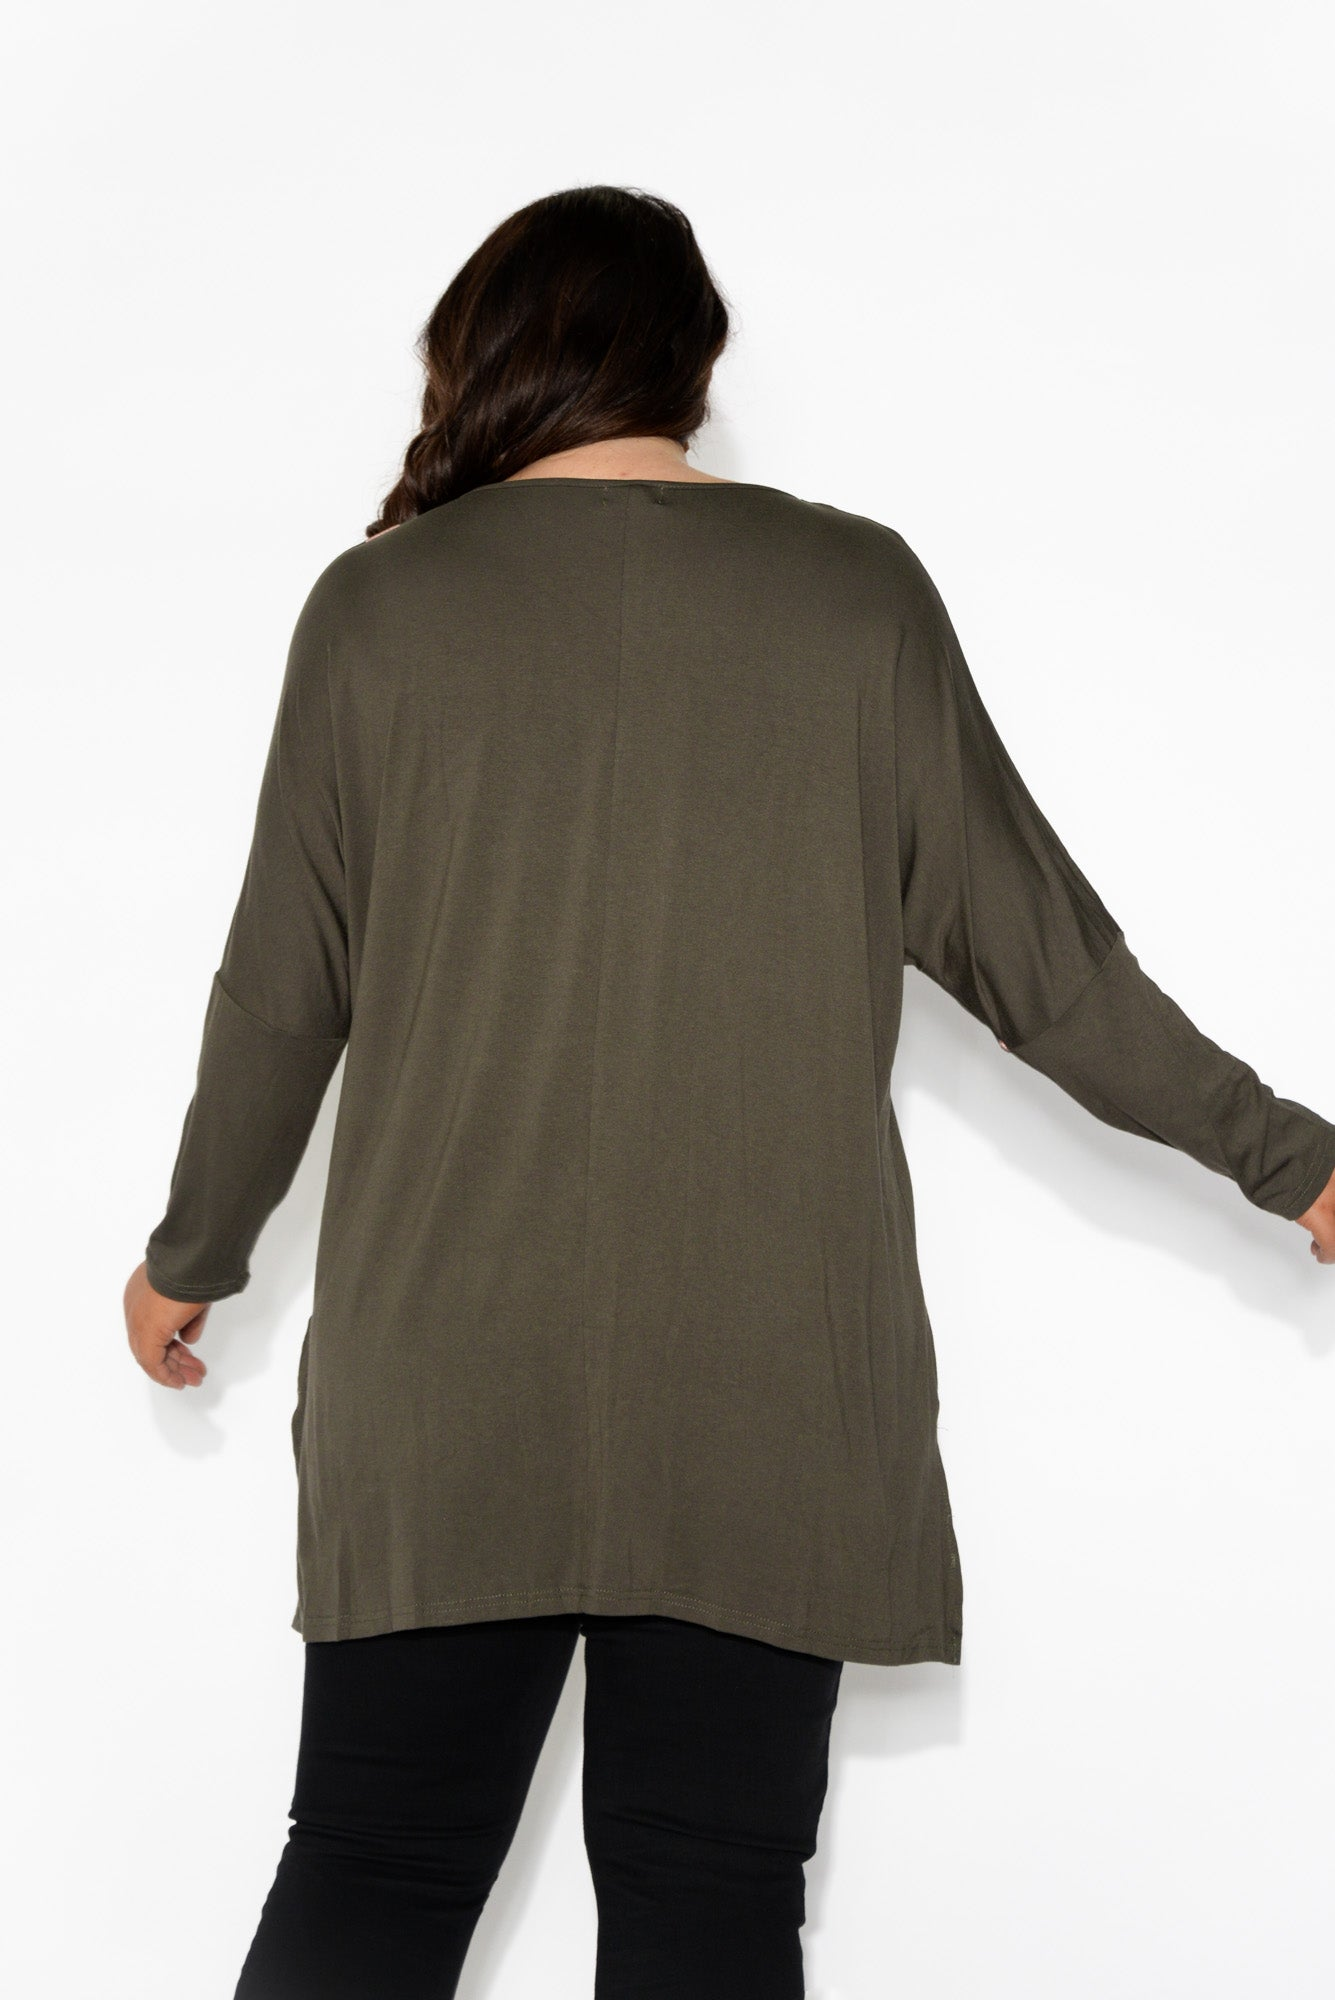 Karlie Khaki Spot Long Sleeved Top